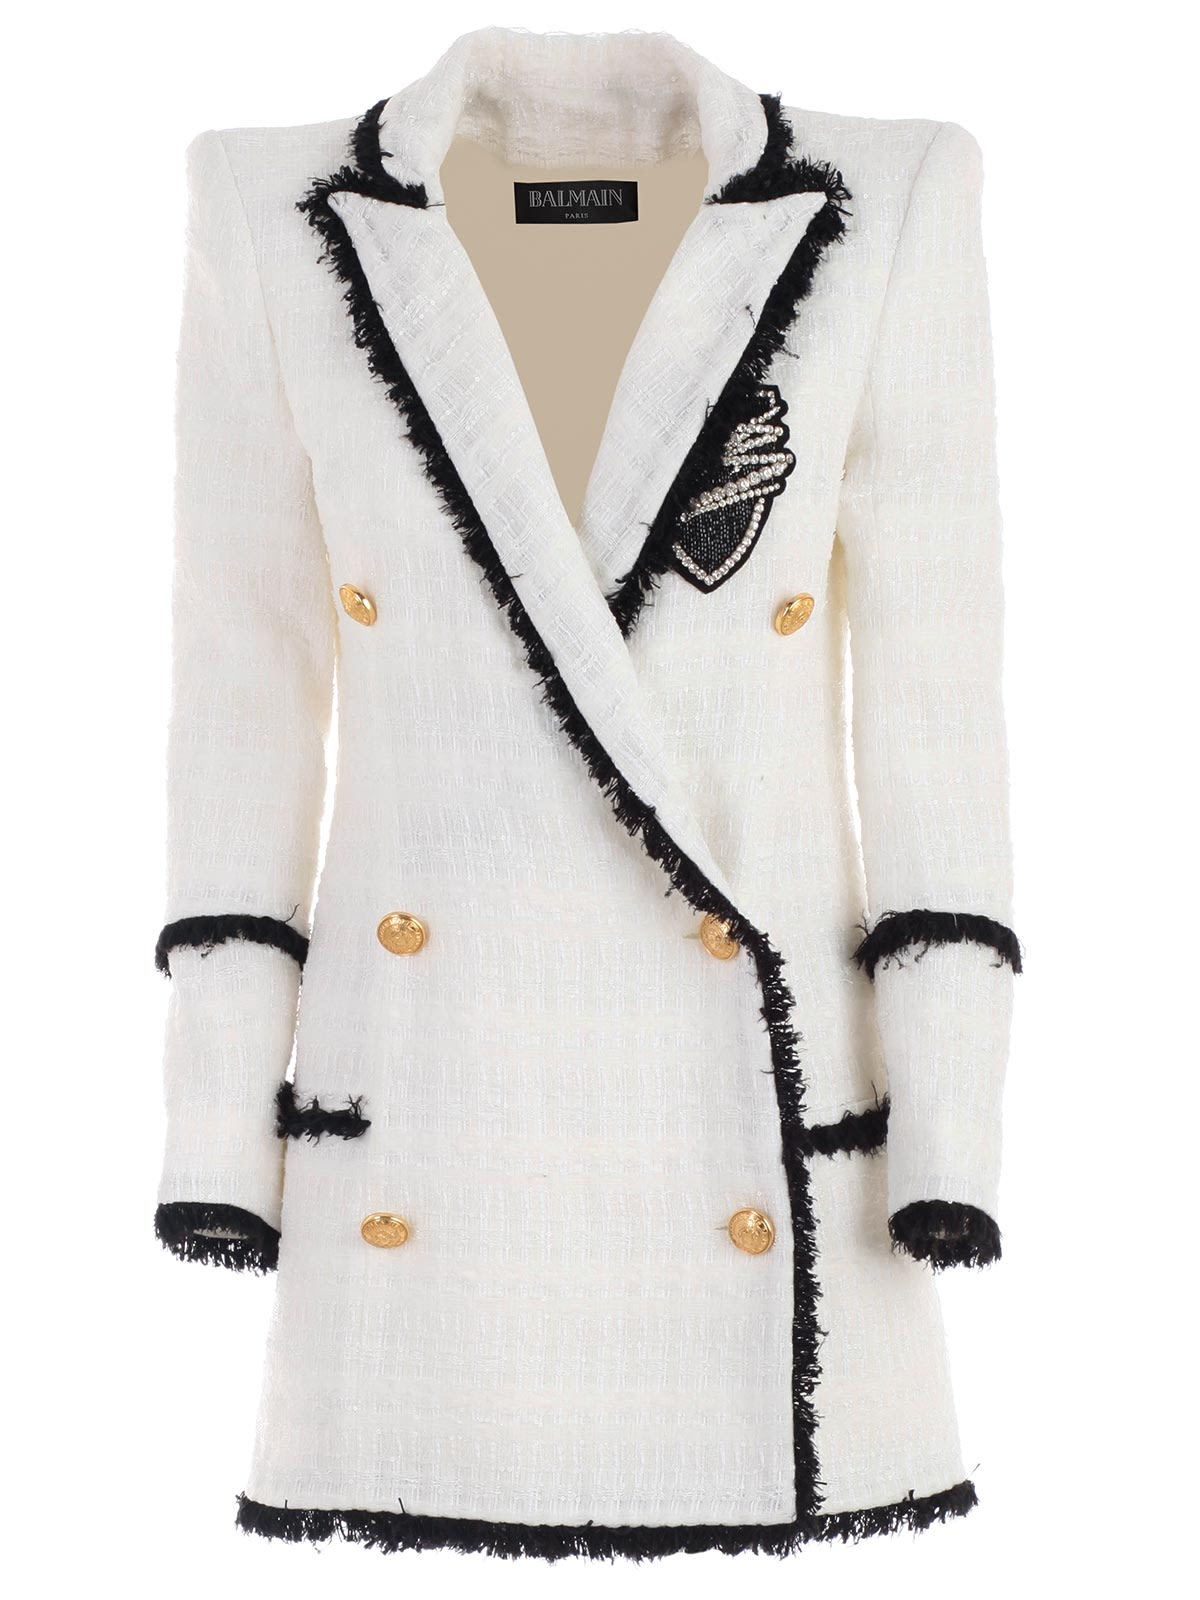 2e3b67a2 Balmain Balmain Double Breasted Tweed Coat - Gba White Black ...